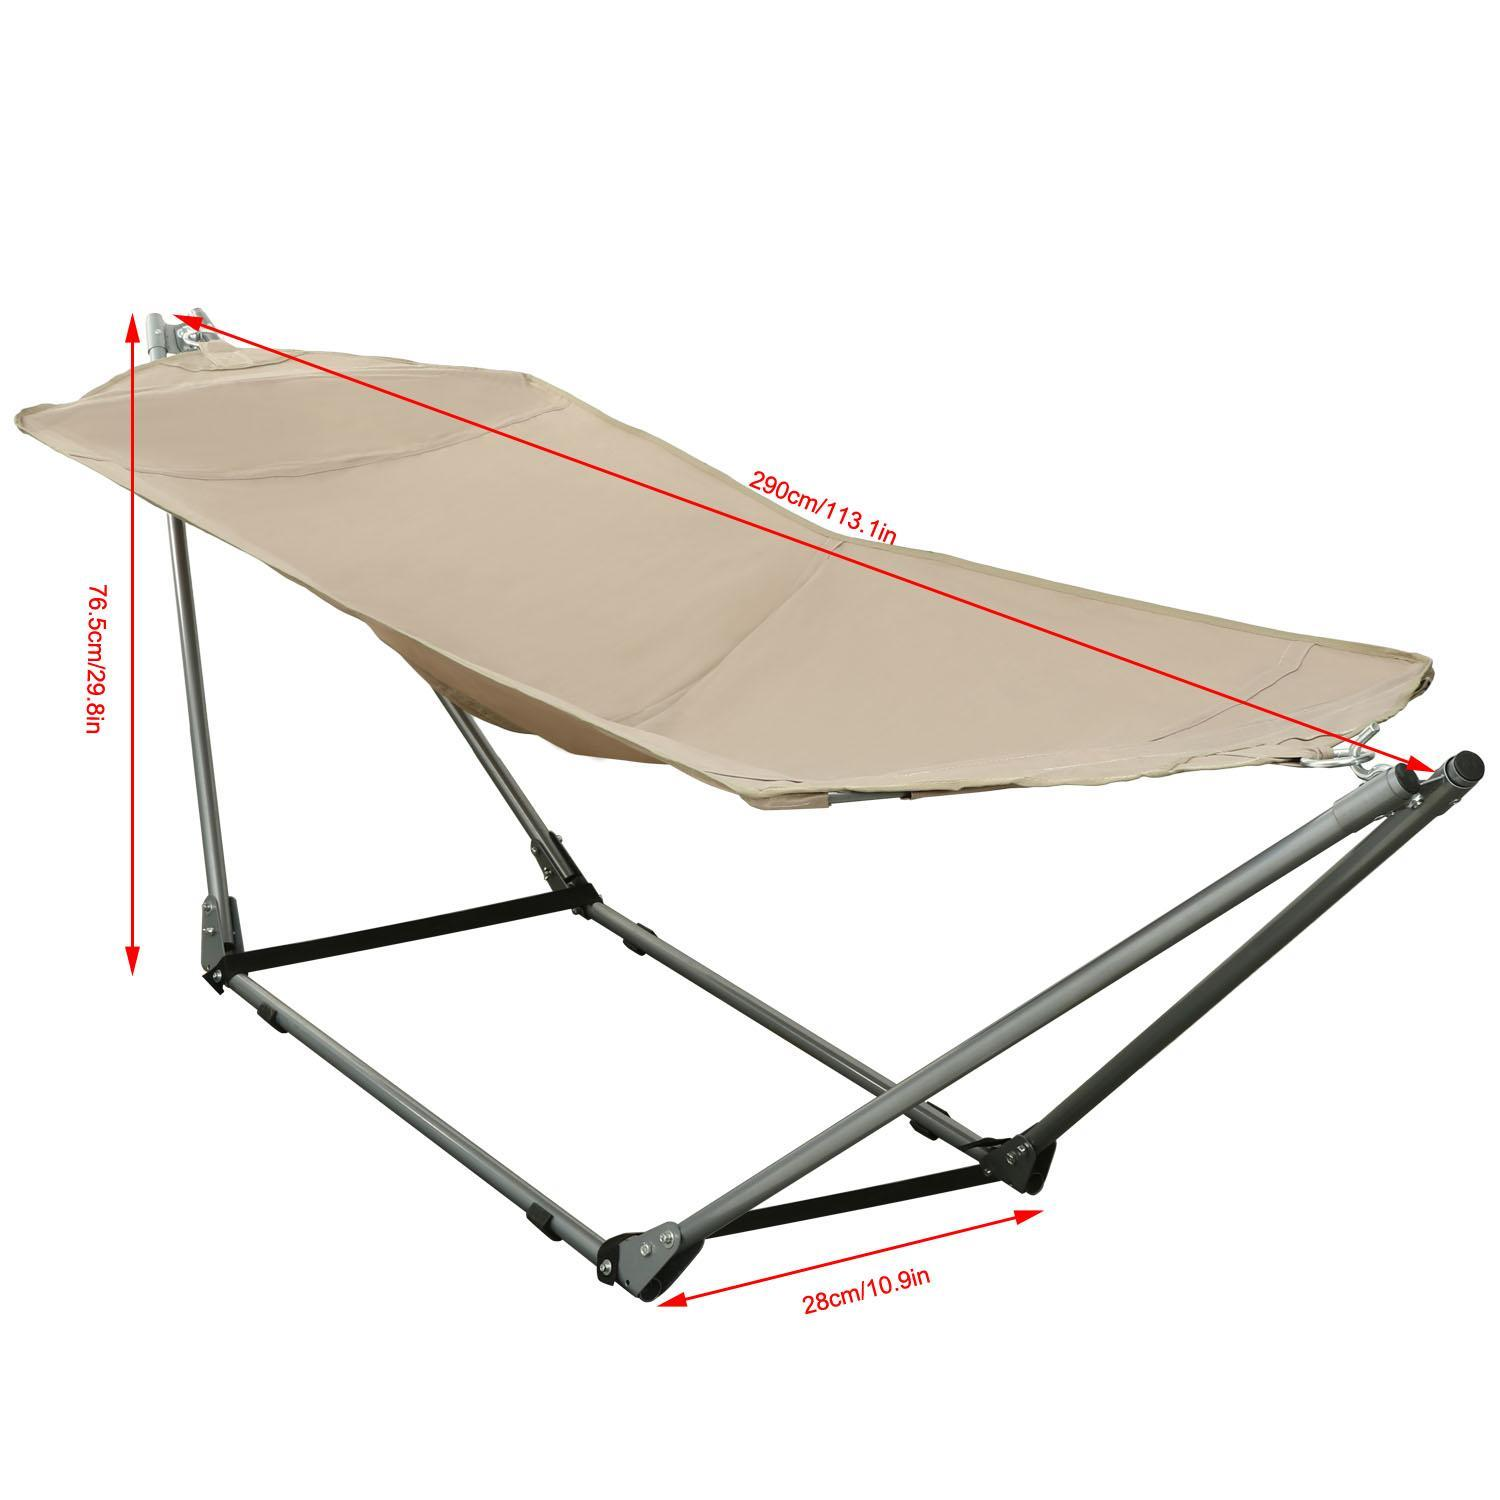 Foldable Adjustable Hammock Garden Beach With Carrying Bag 2